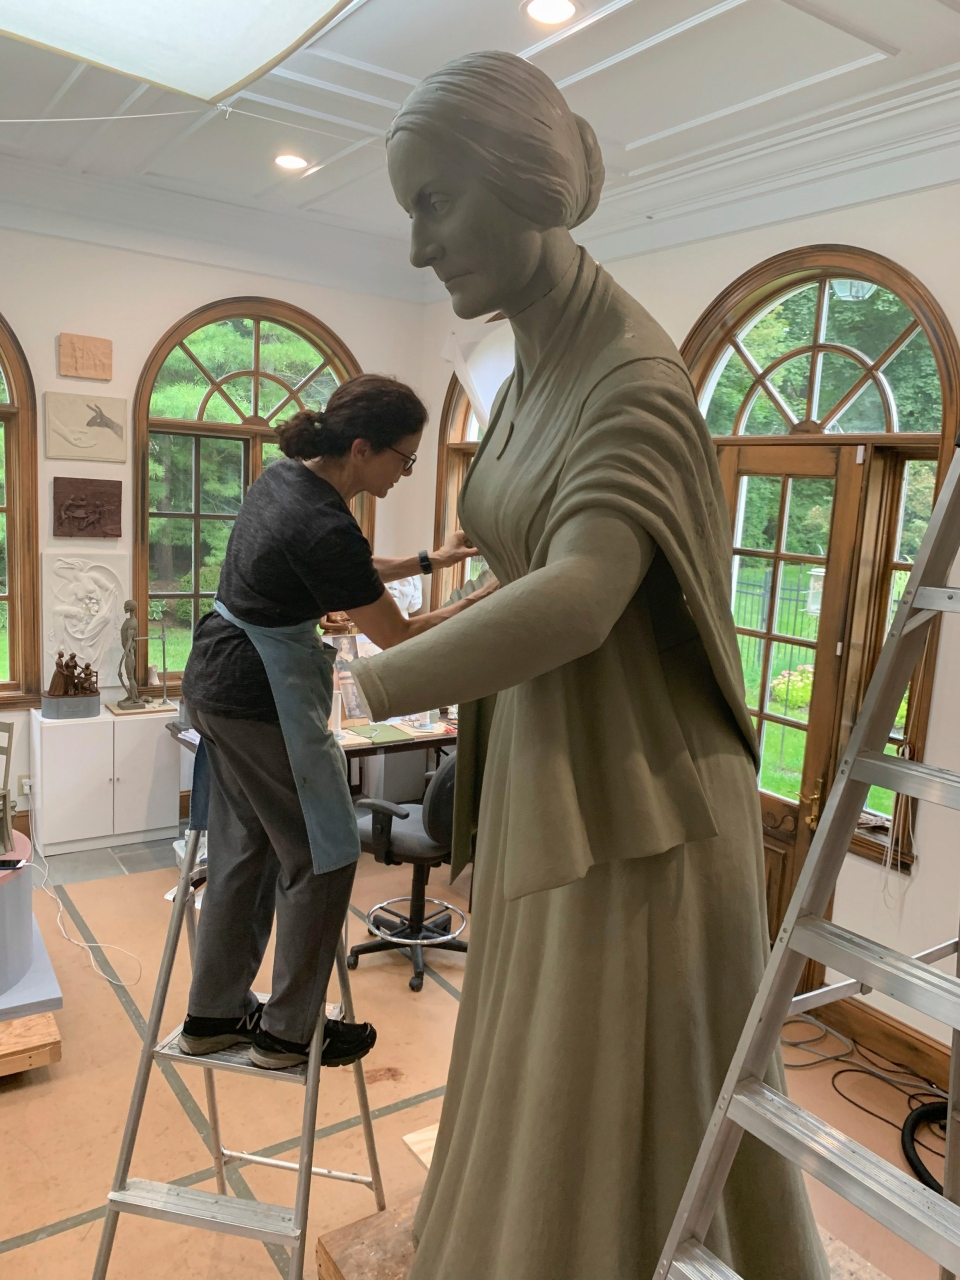 In this Sept. 10, 2019 photo provide by Michael Bergmann, artist Meredith Bergmann works on a sculpture of Susan B. Anthony at her studio in Ridgefield, Conn. (Michael Bergmann via AP)